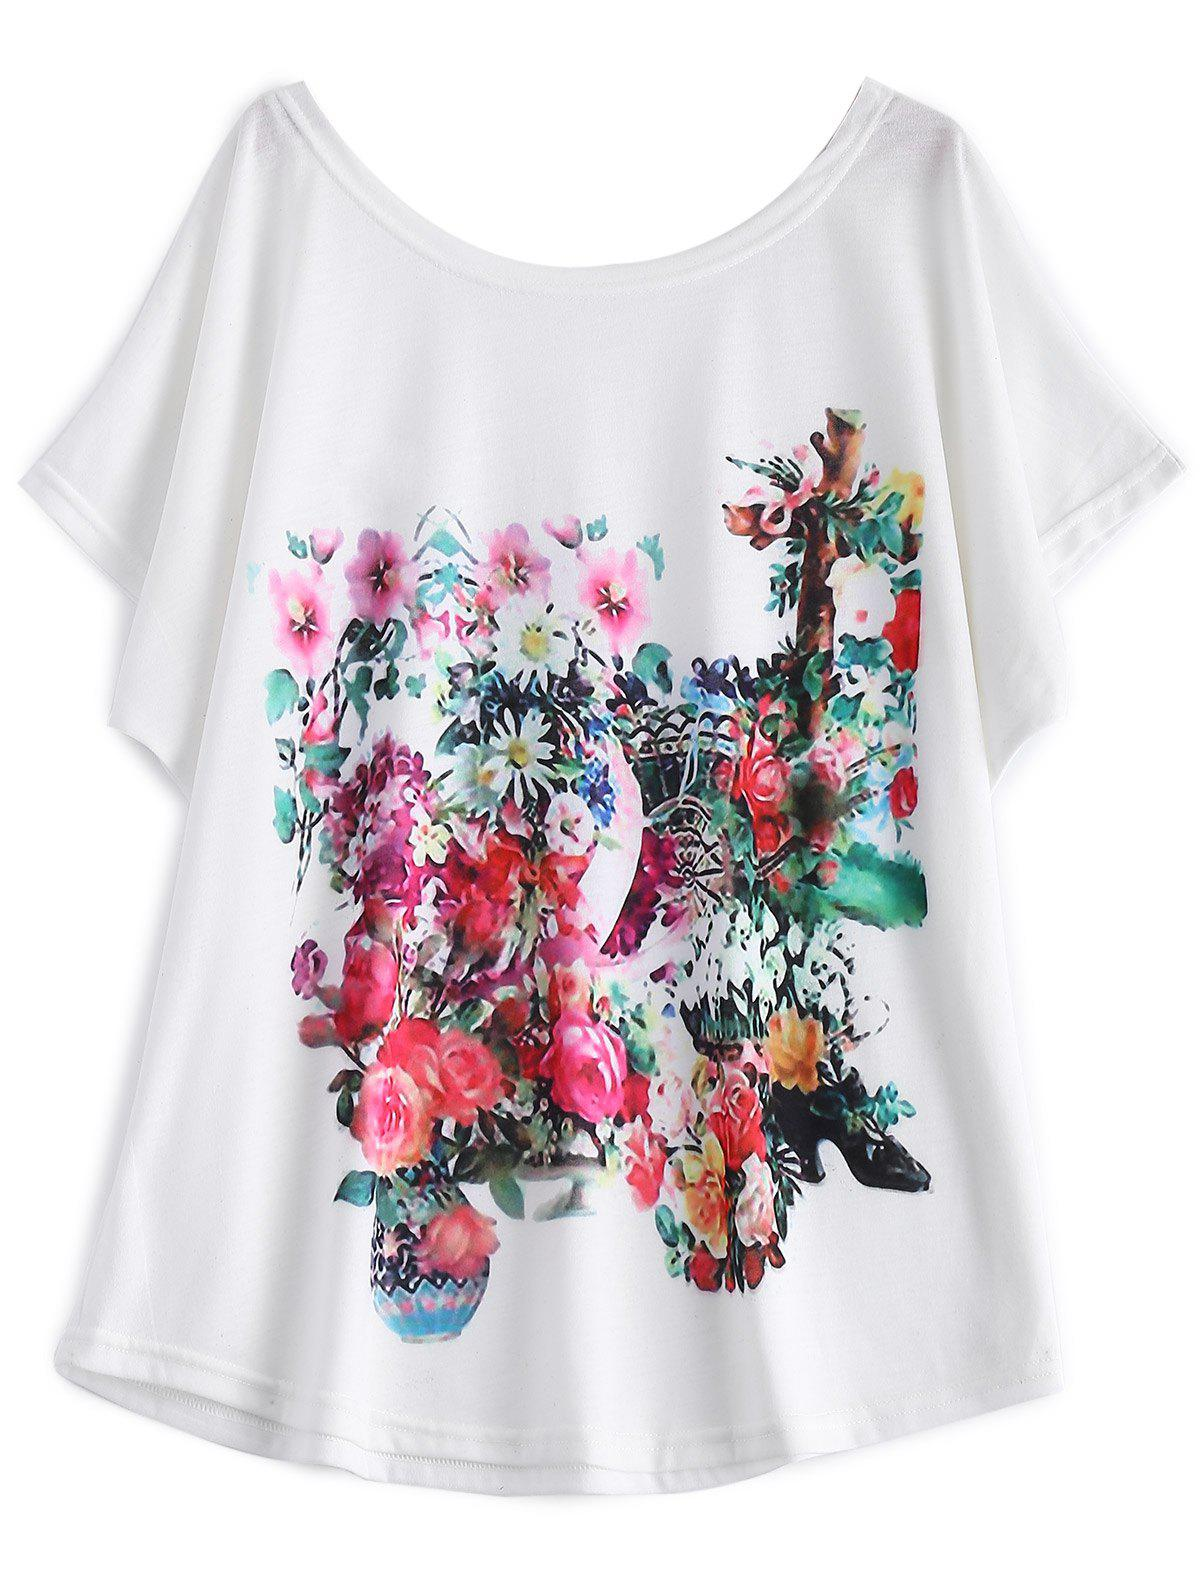 White Batwing Sleeve Floral Print T-Shirt - WHITE 2XL